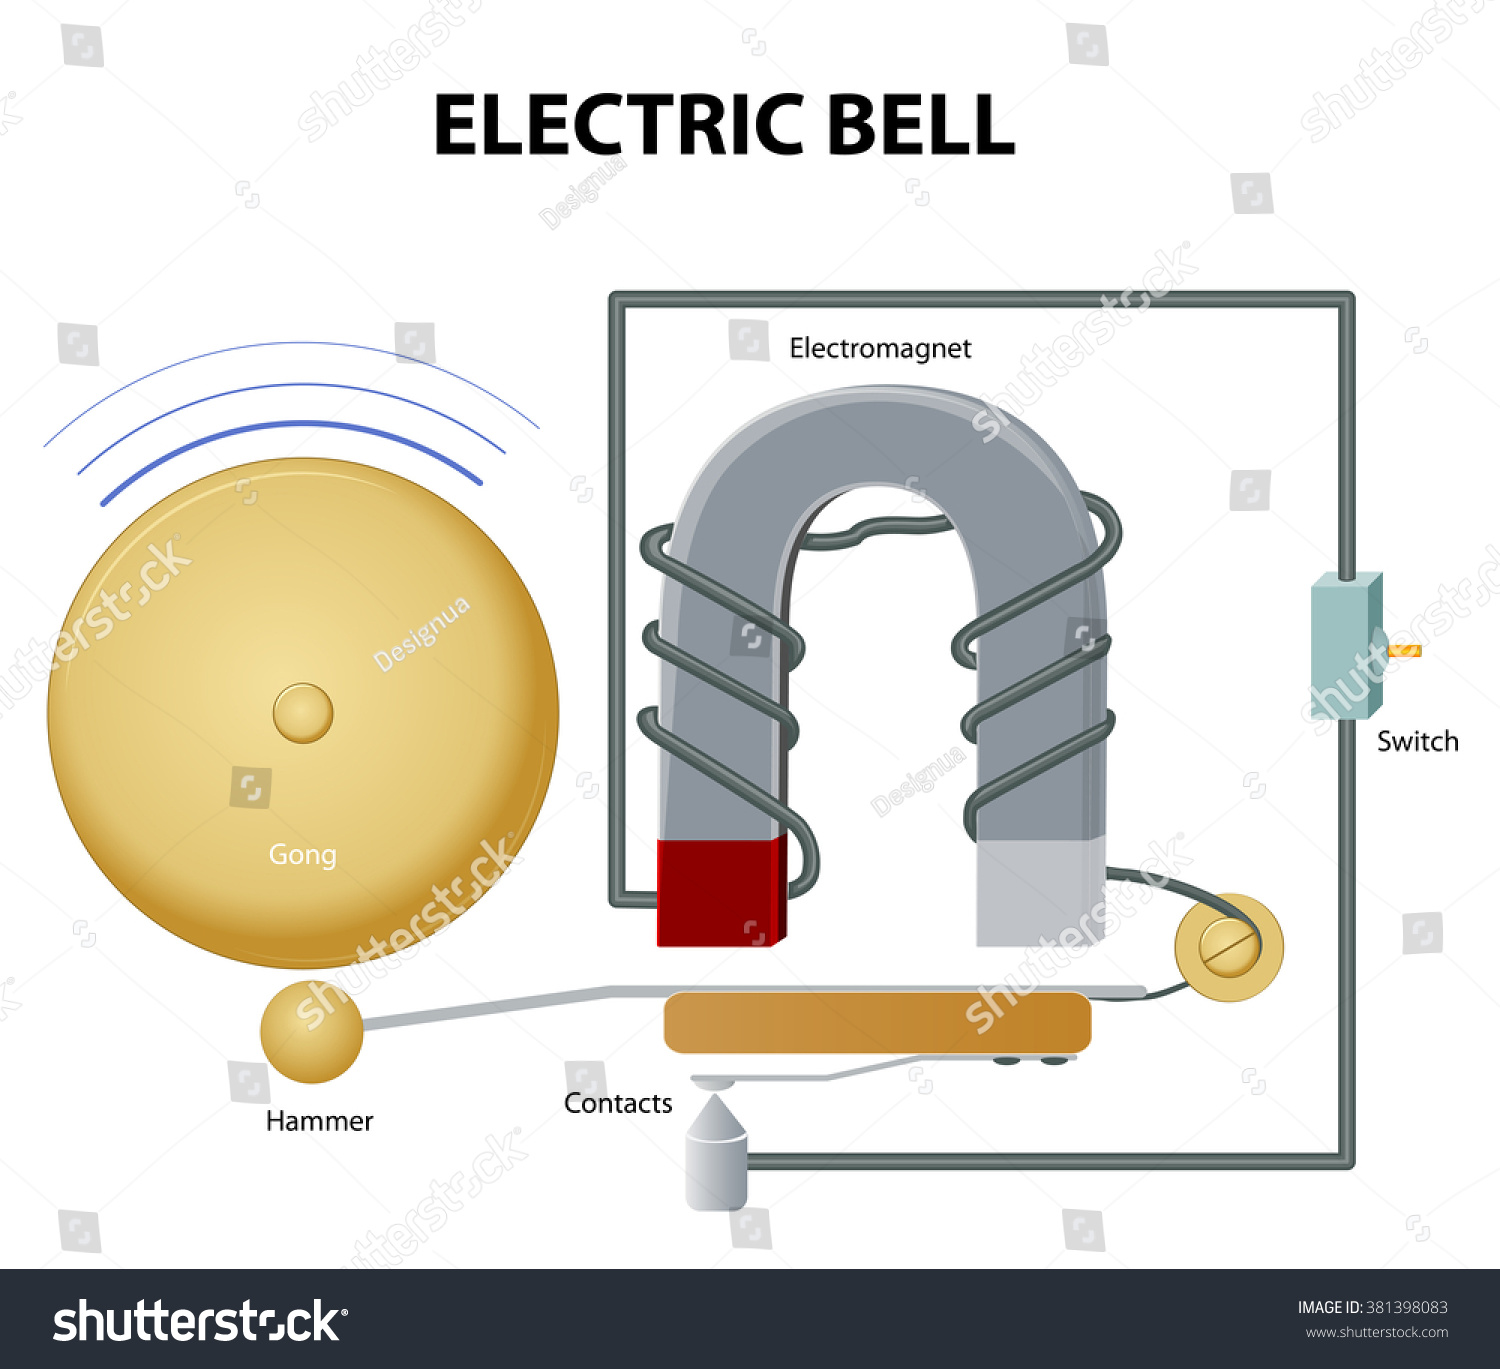 how does an electric bell work diagram basic ignition coil wiring electromagnetic doorbell and nutone 350